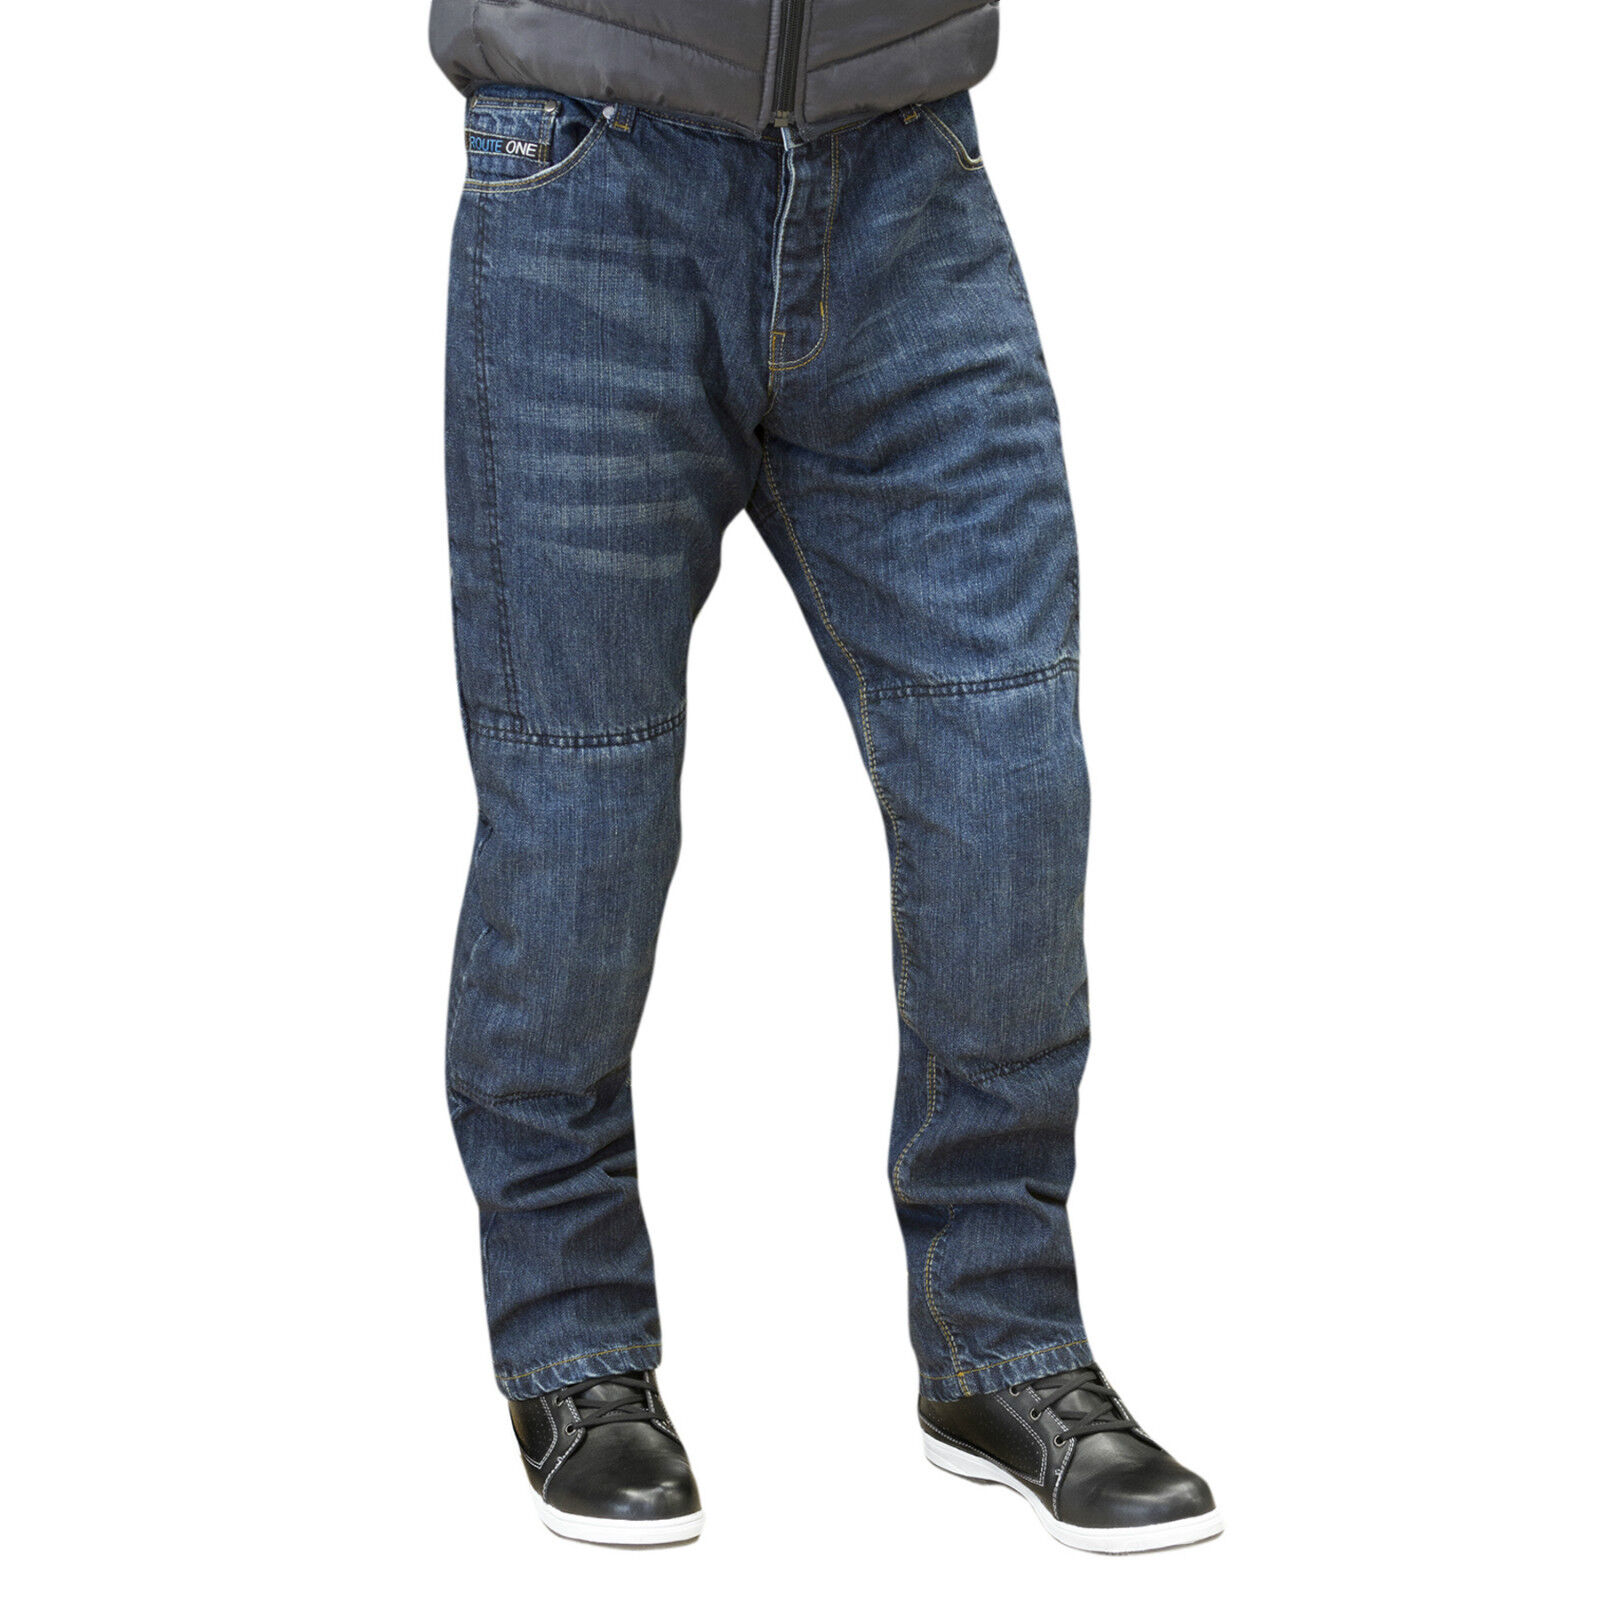 Route One Brooklyn Water Repellent Motorcycle Jeans motorbike armour protect